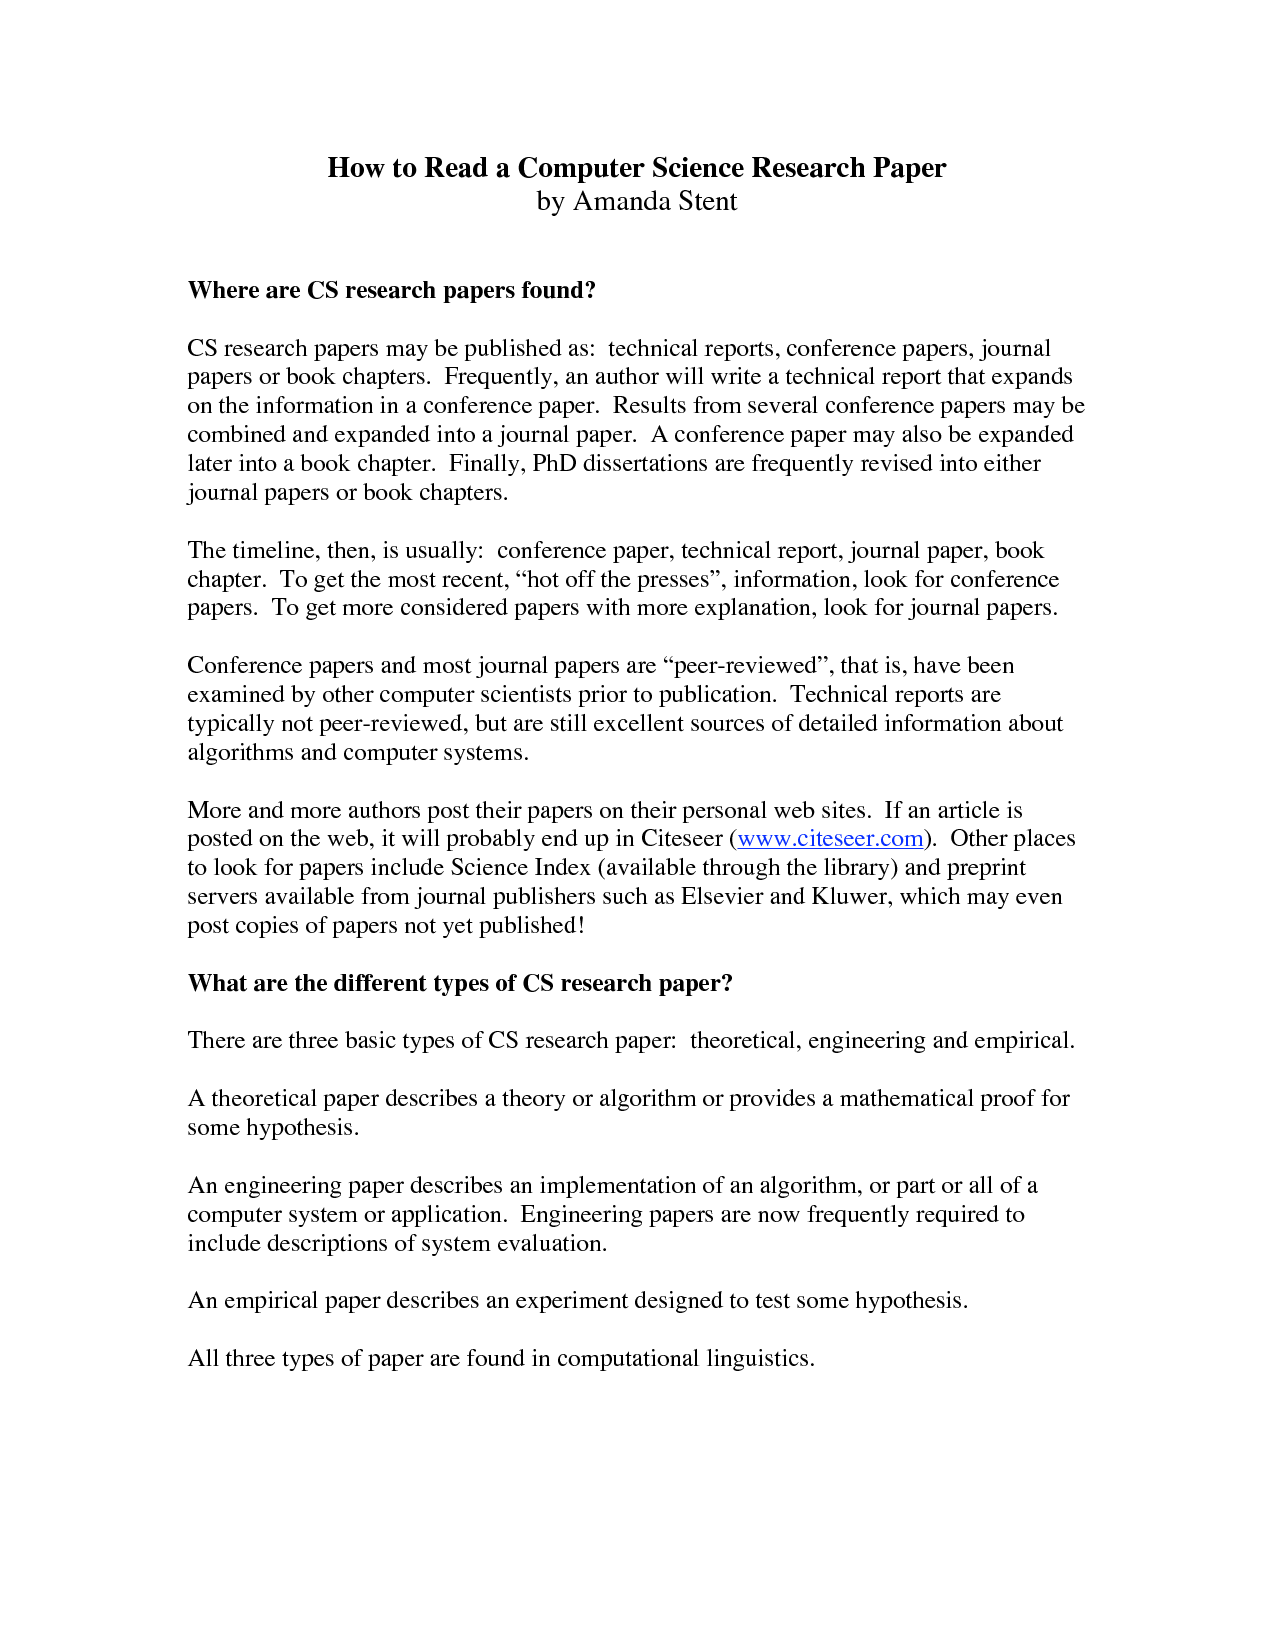 how to write an introduction for a scientific research paper